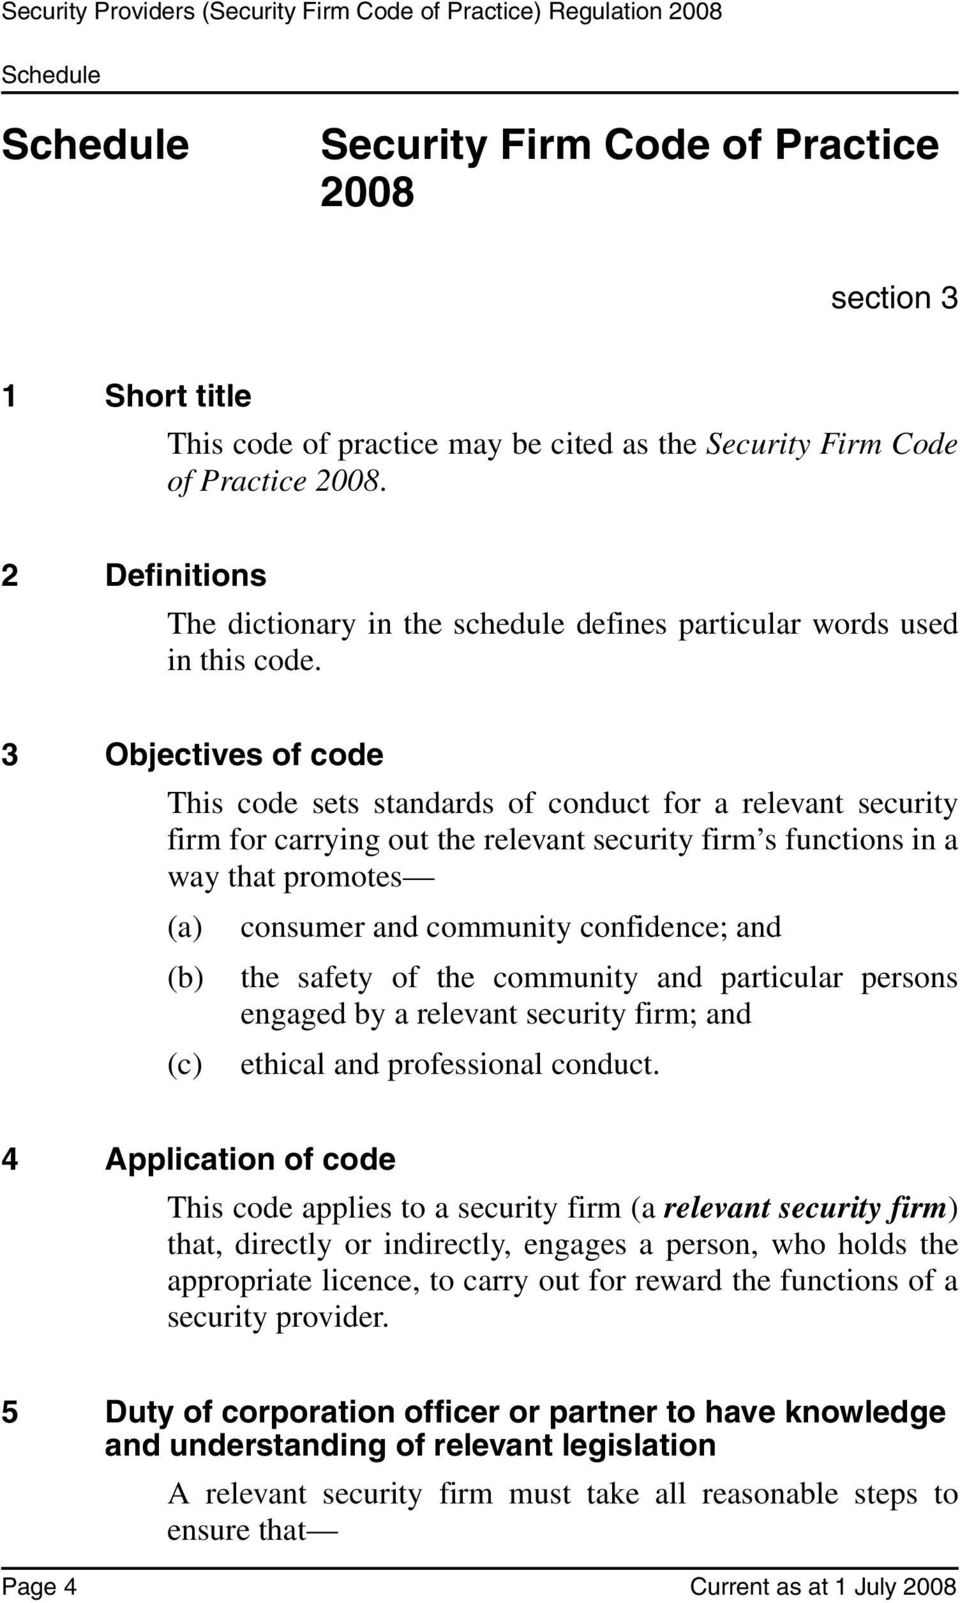 3 Objectives of code This code sets standards of conduct for a relevant security firm for carrying out the relevant security firm s functions in a way that promotes (a) consumer and community